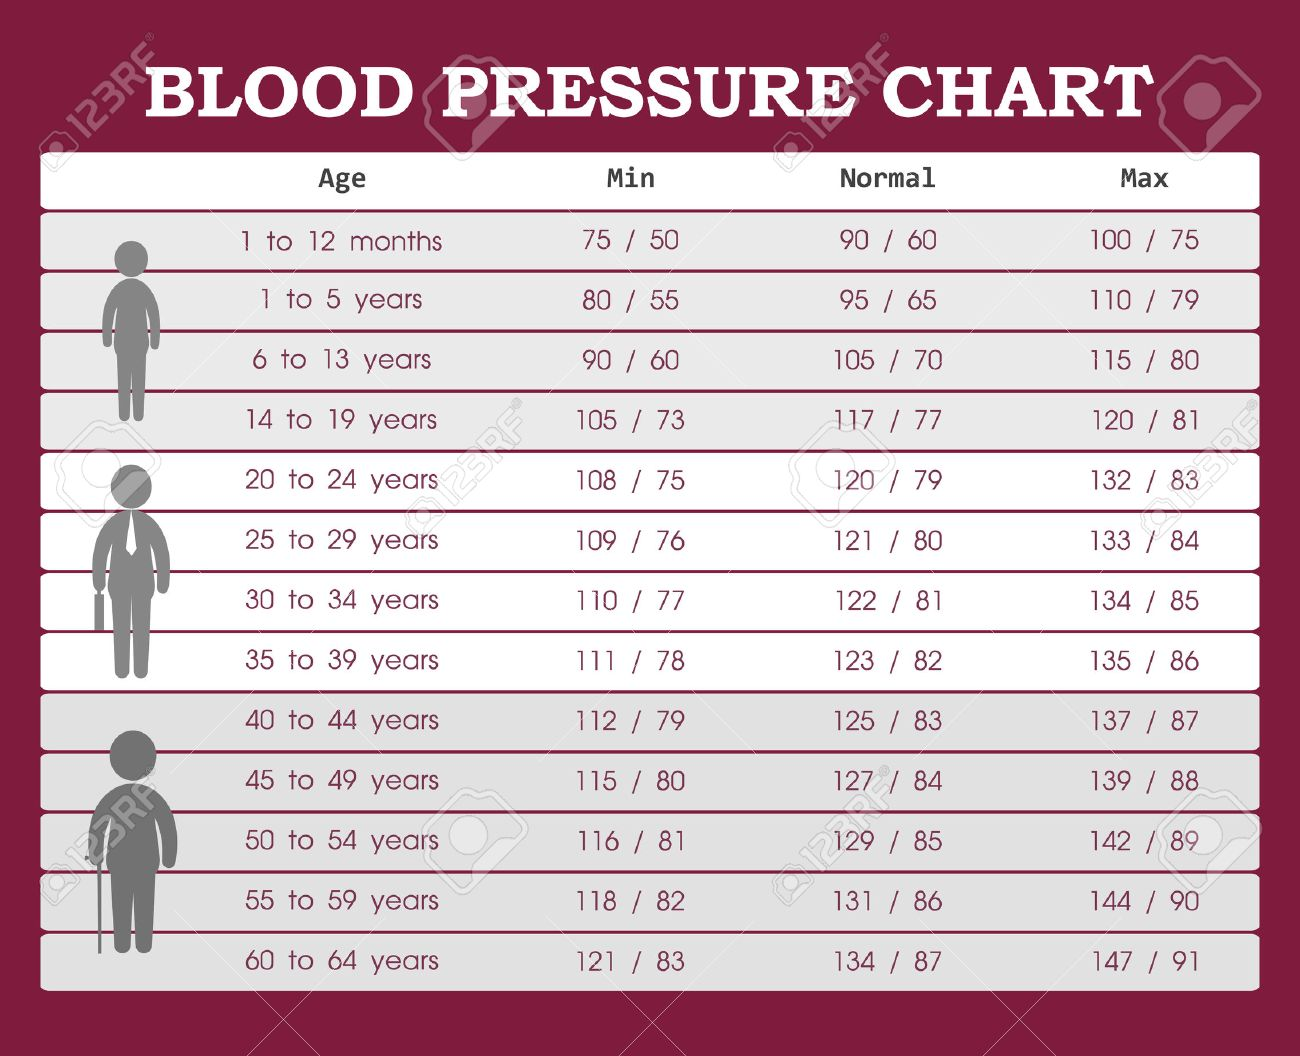 Blood Pressure Chart From Young People To Old People Royalty Free – Blood Pressure Chart